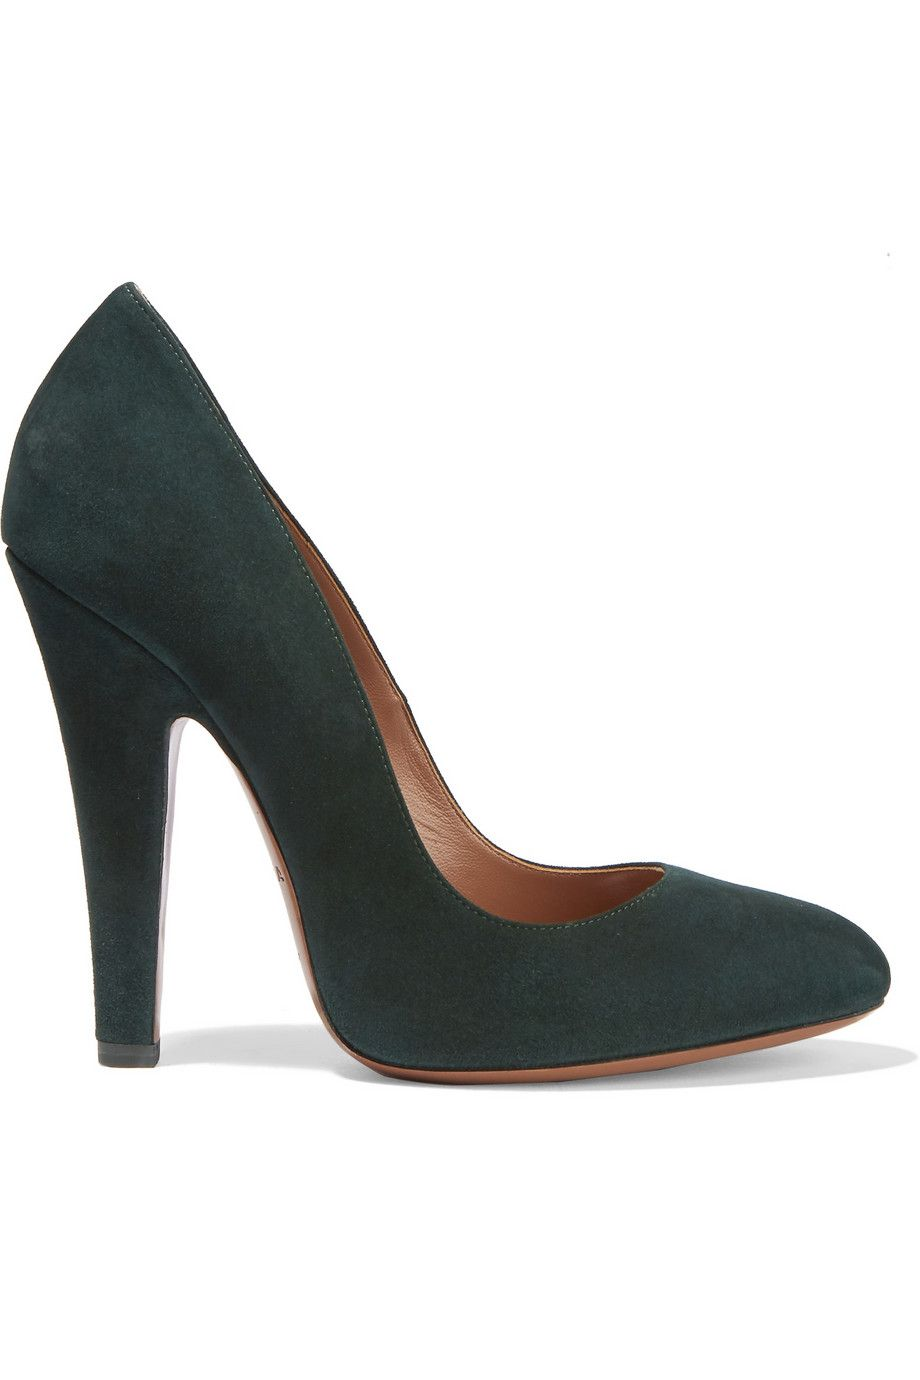 1f0c1598d2f5 ALAÏA Suede Pumps.  alaïa  shoes  pumps